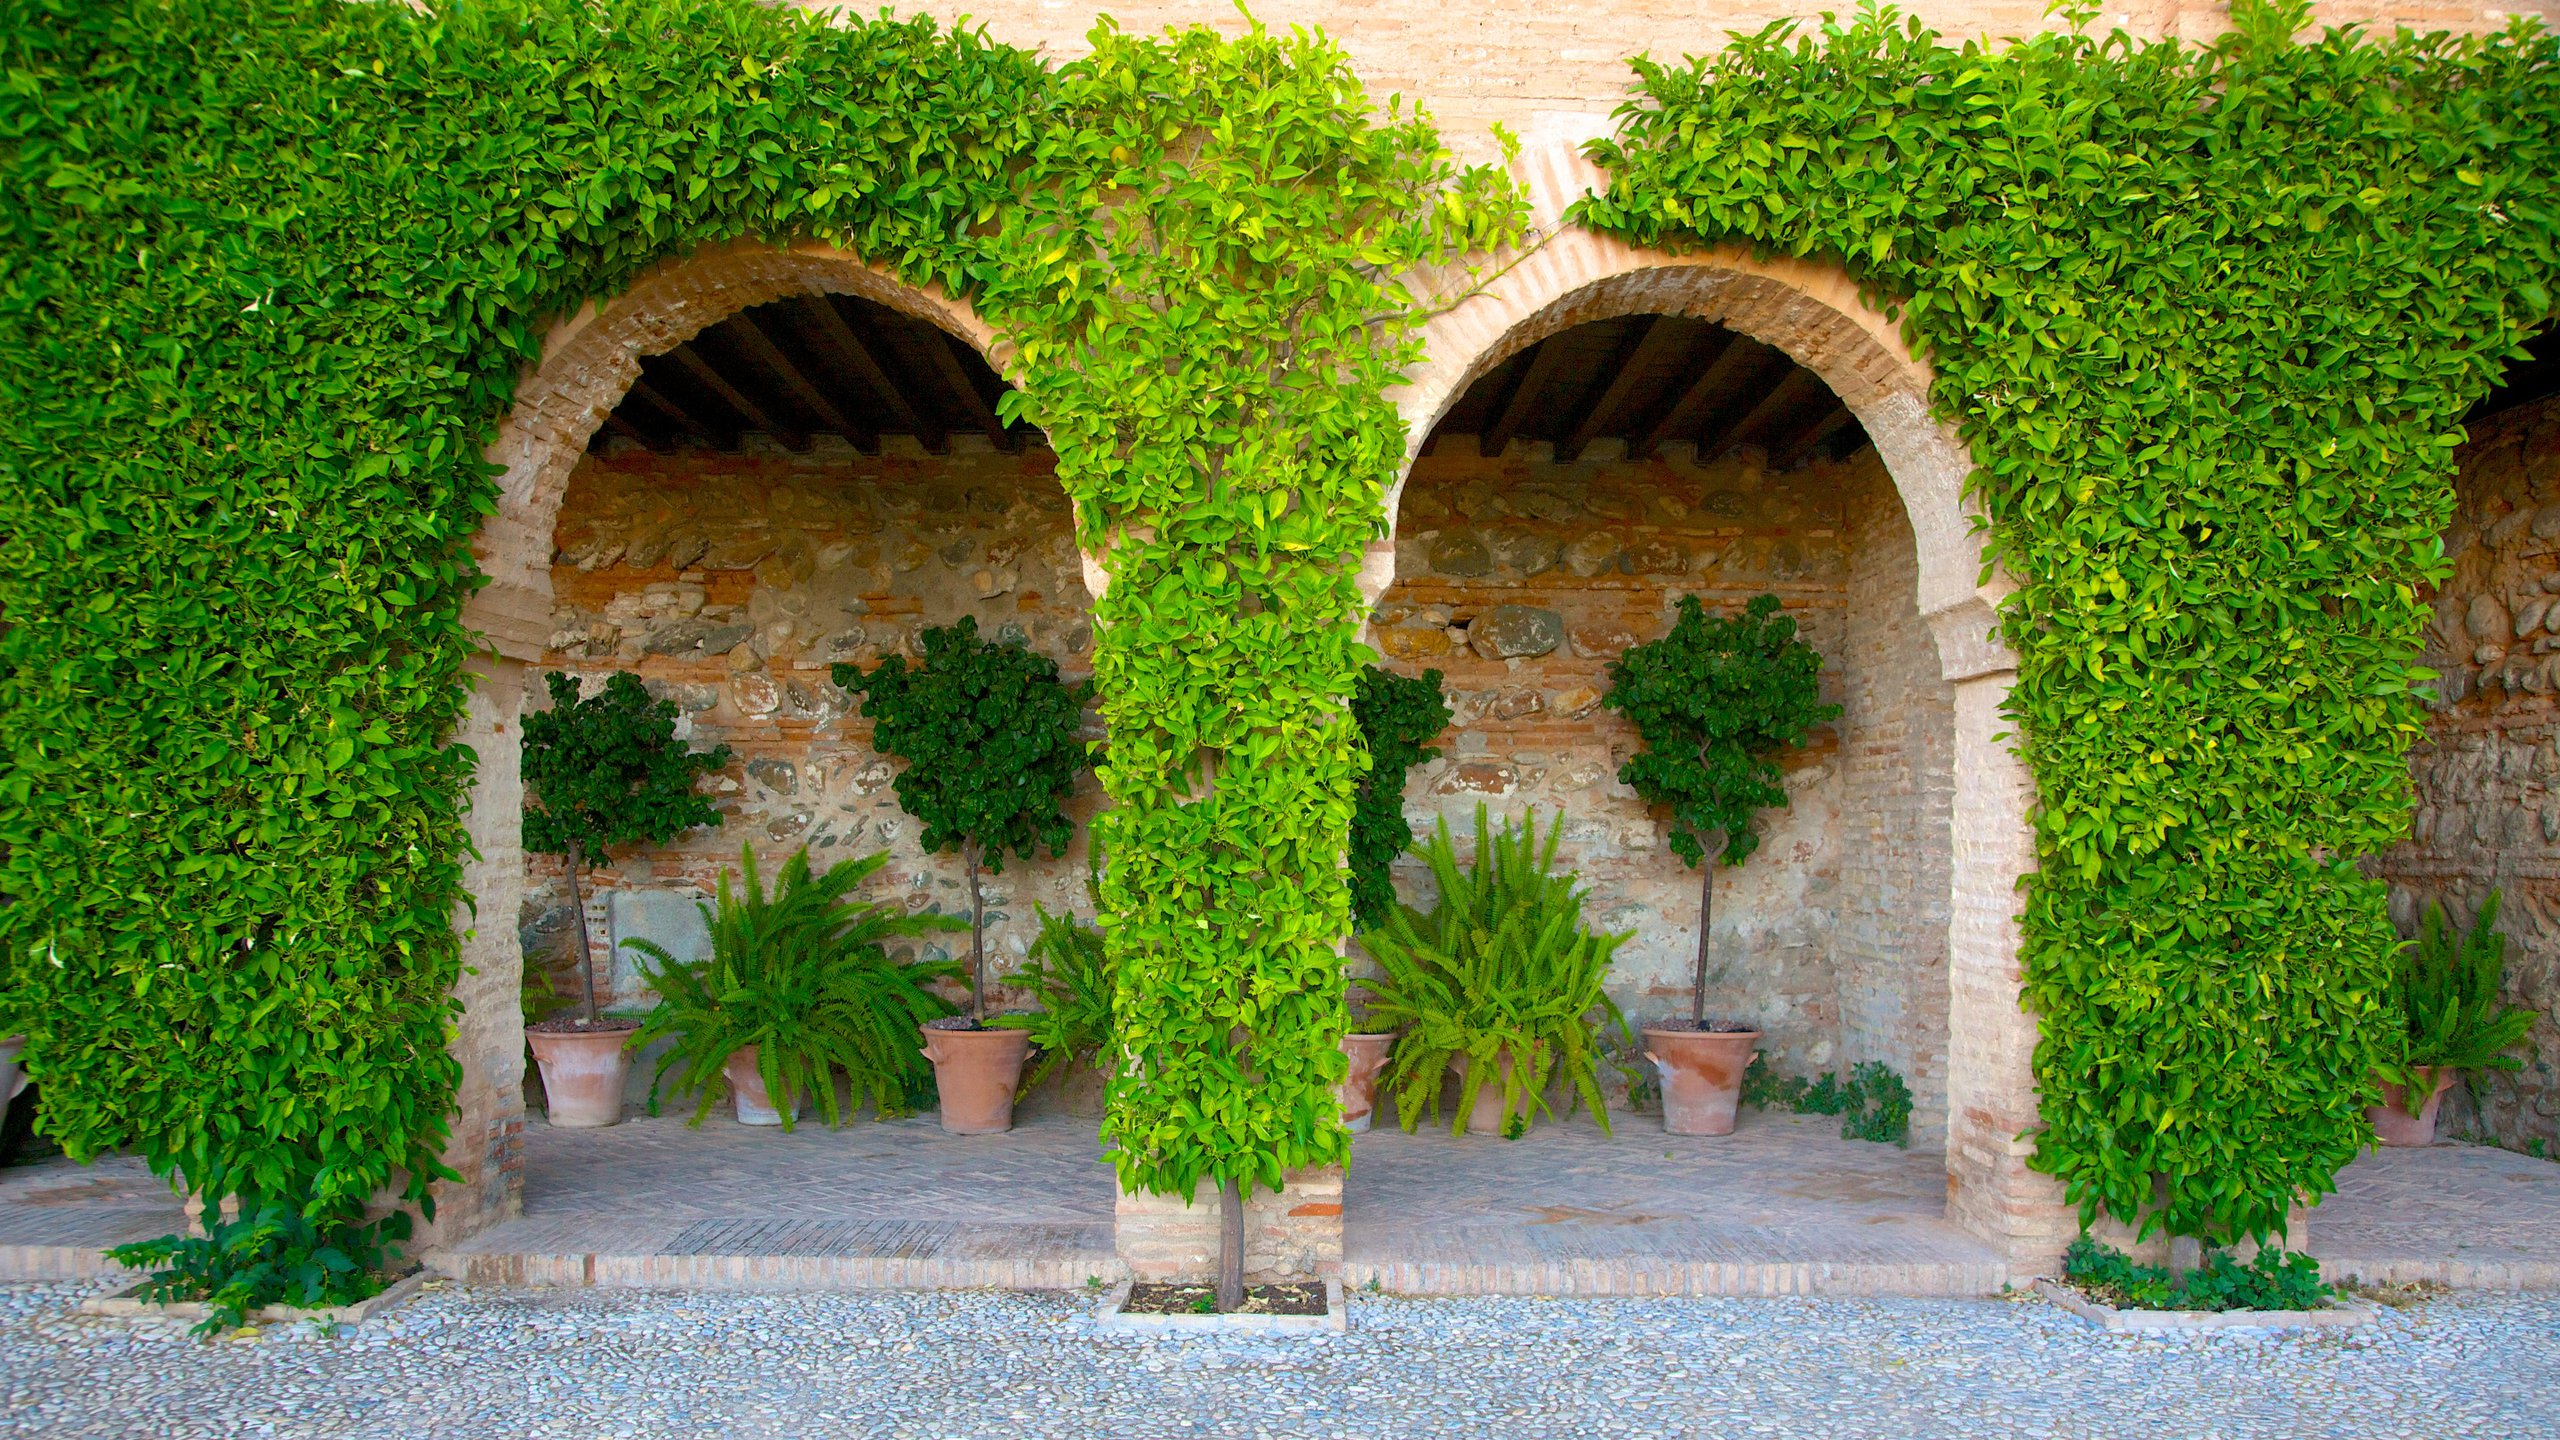 The palatial summer retreat of the Alhambra is one of the world's great gardens and a fascinating window into the lives and loves of Granada's Moorish rulers.